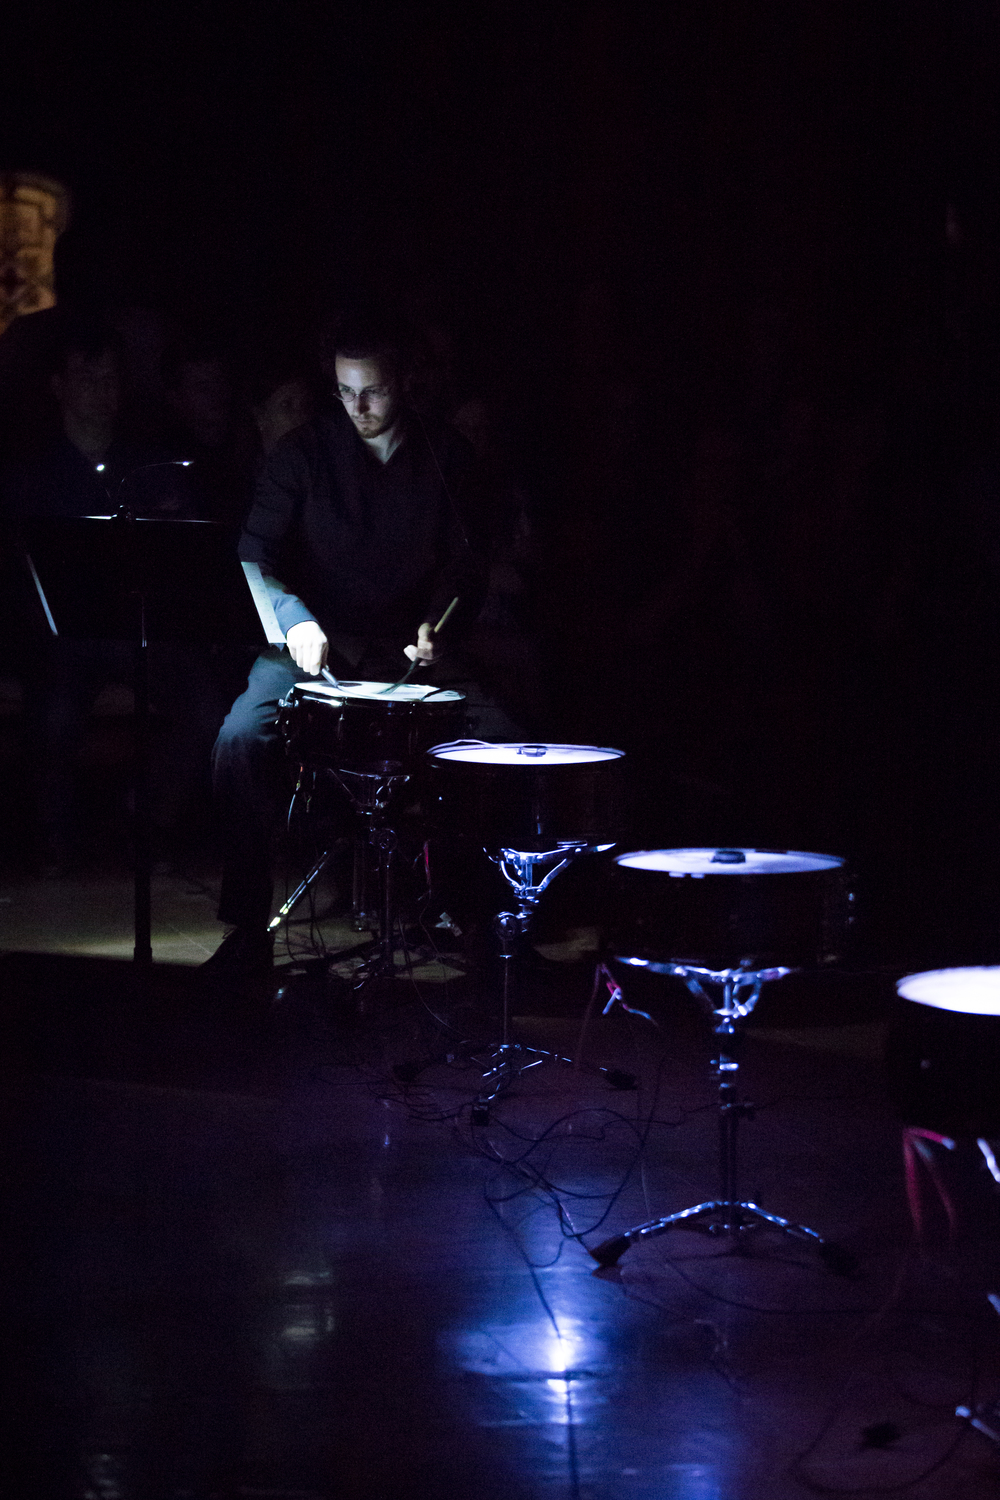 in levitation, lightness  (2015) is a work for brass quintet, electronics, and light producing snares, featuring variations on a theme in stasis.   The piece was curated and performed by ensemble  Magnitude 6  for the show  Constellations,  presented at Le Gesù in Montreal, QC on June 3/4, 2015.  http://magnitude6.ca/in-levitation-lightness/